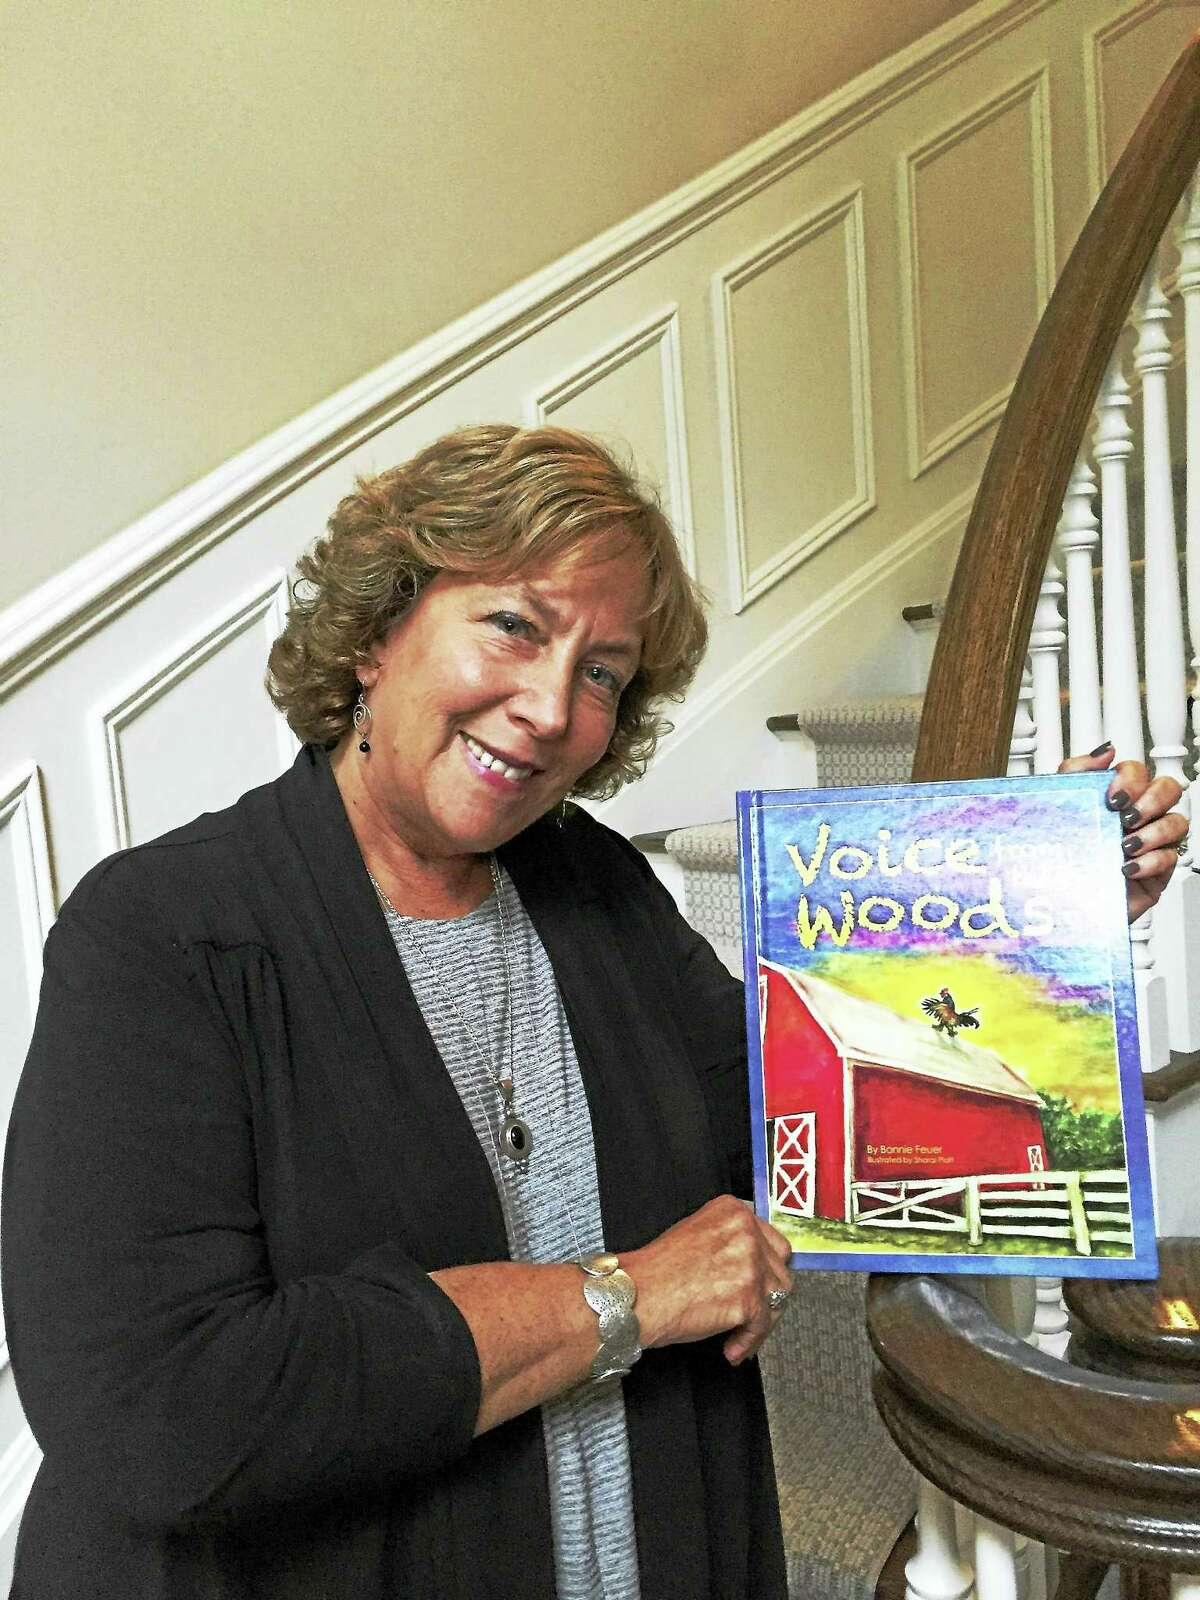 """Author and educator Bonnie Feuer with her newly released children's book, """"Voice from the Woods,"""" which addressed bullying through animal characters. (Contributed photo)"""